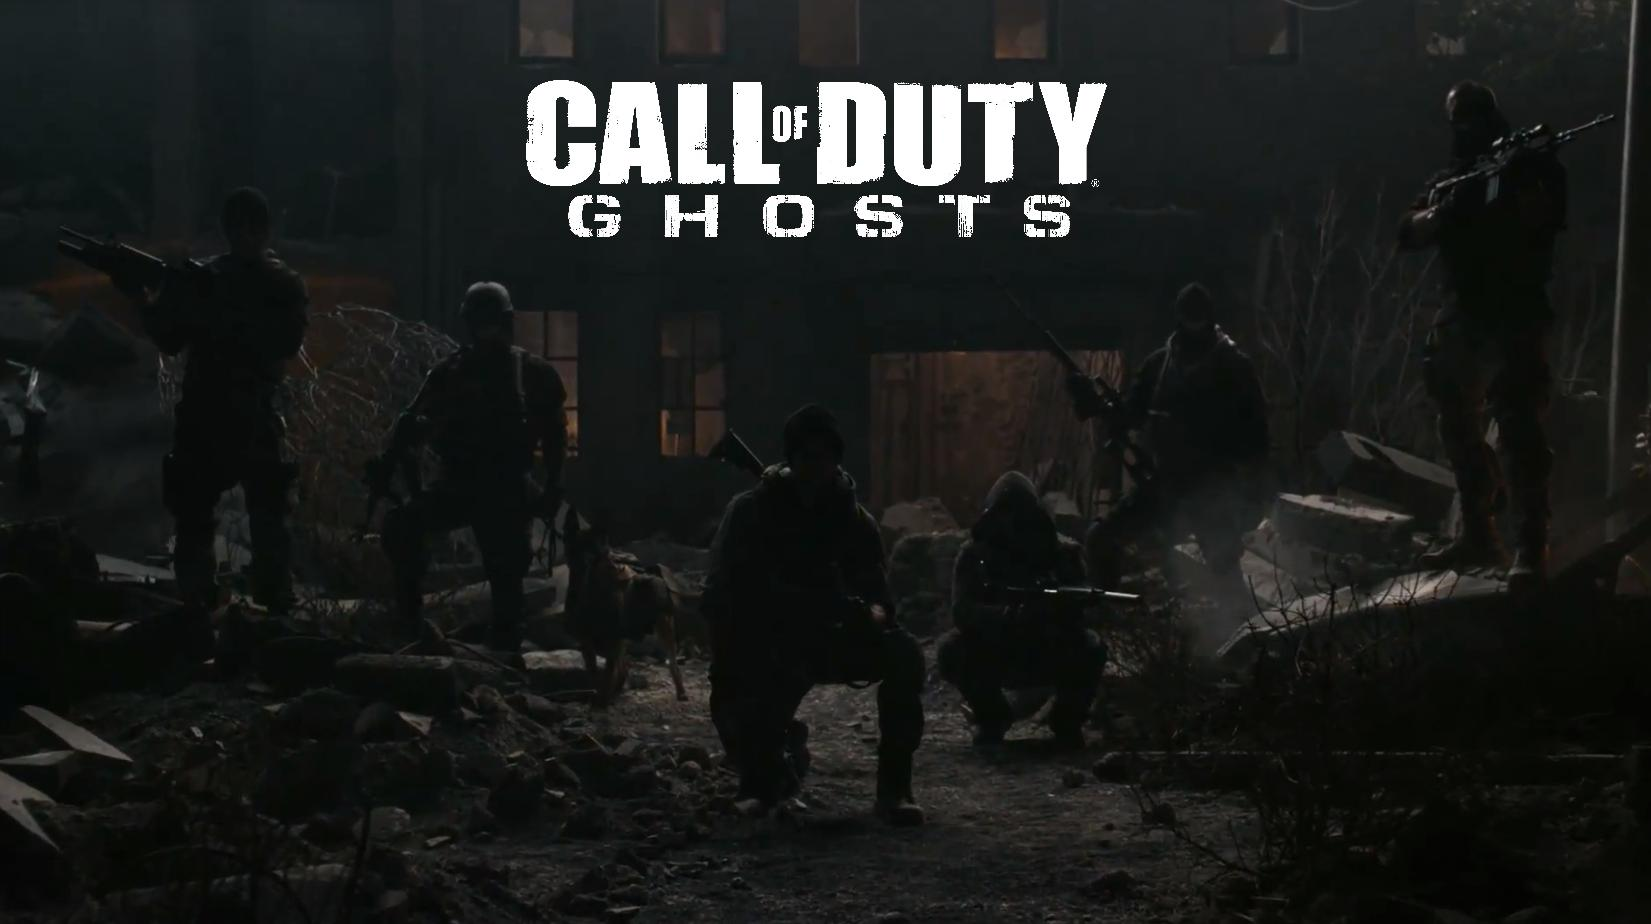 call of duty ghosts hd wallpaper High Quality WallpapersWallpaper 1651x924